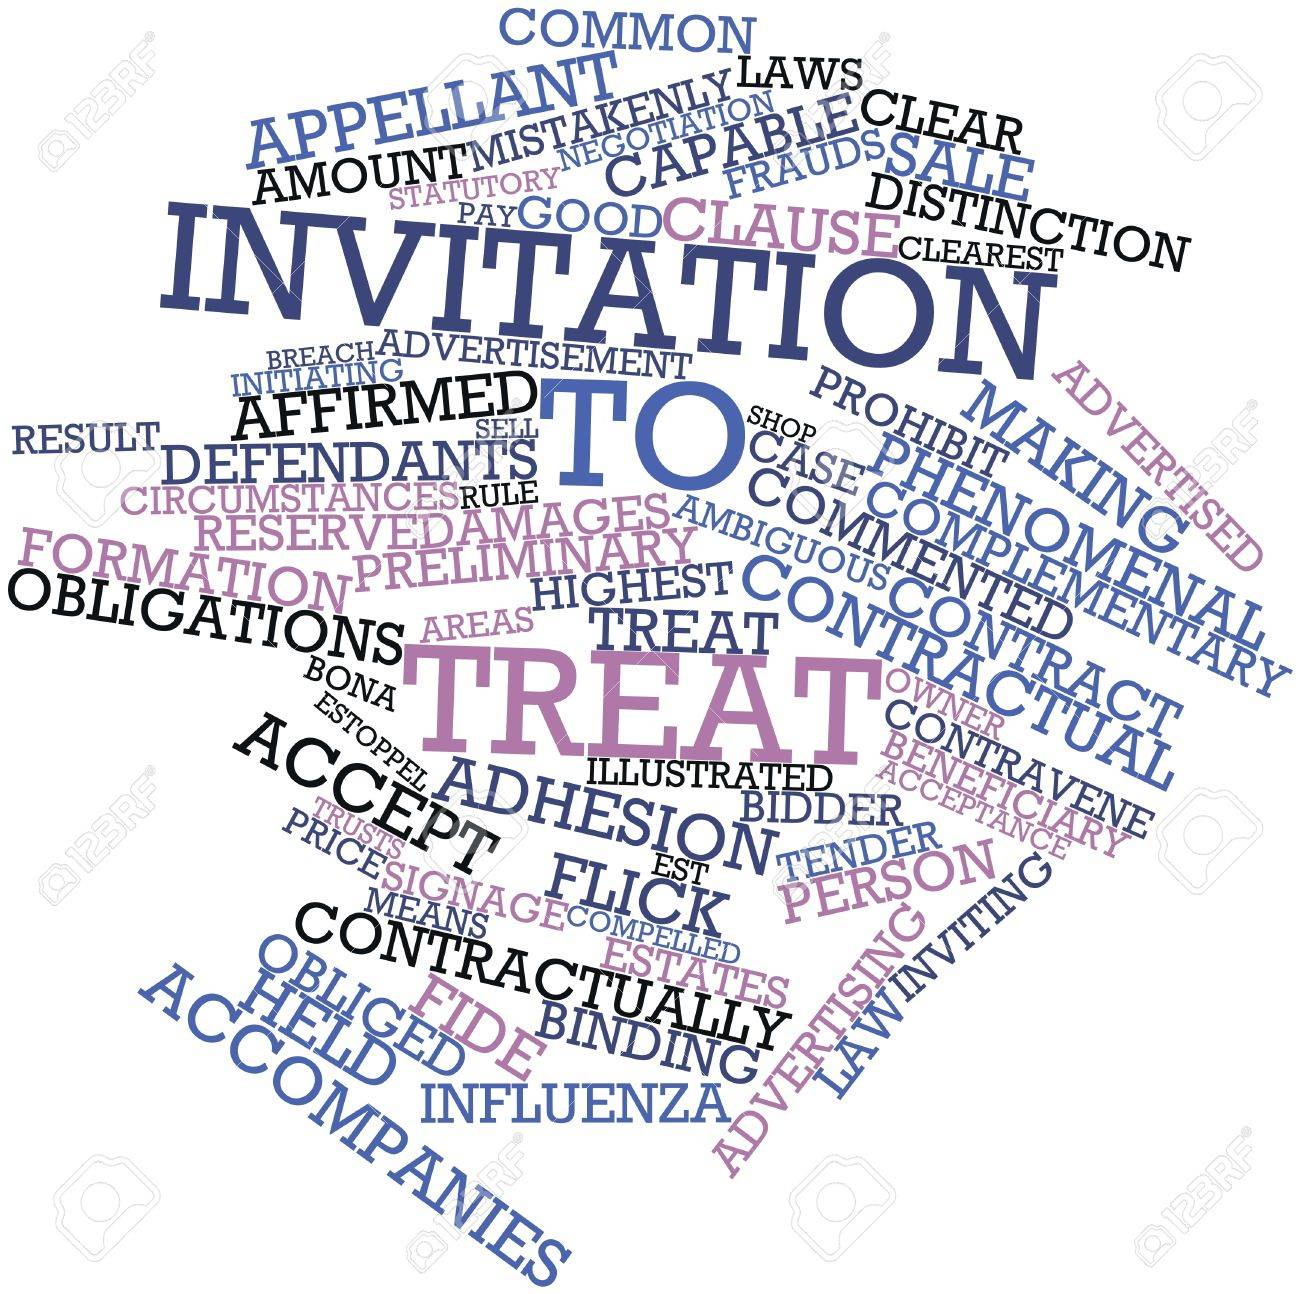 Opinions On Invitation To Treat